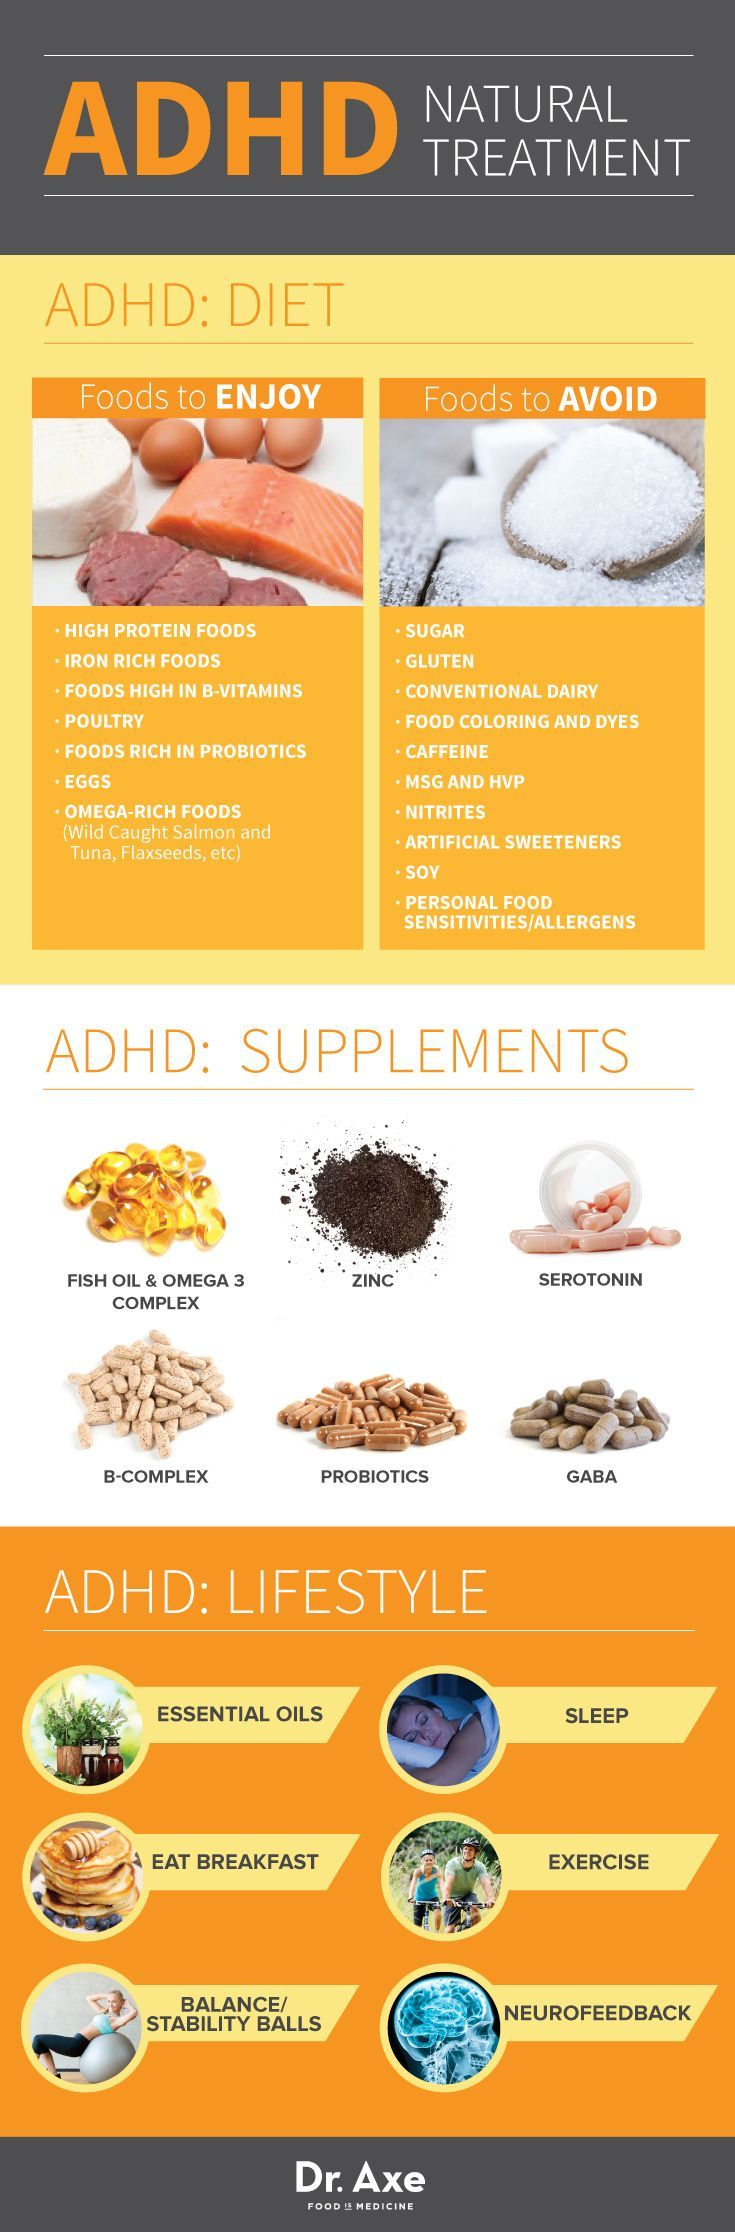 Treating Adult ADHD